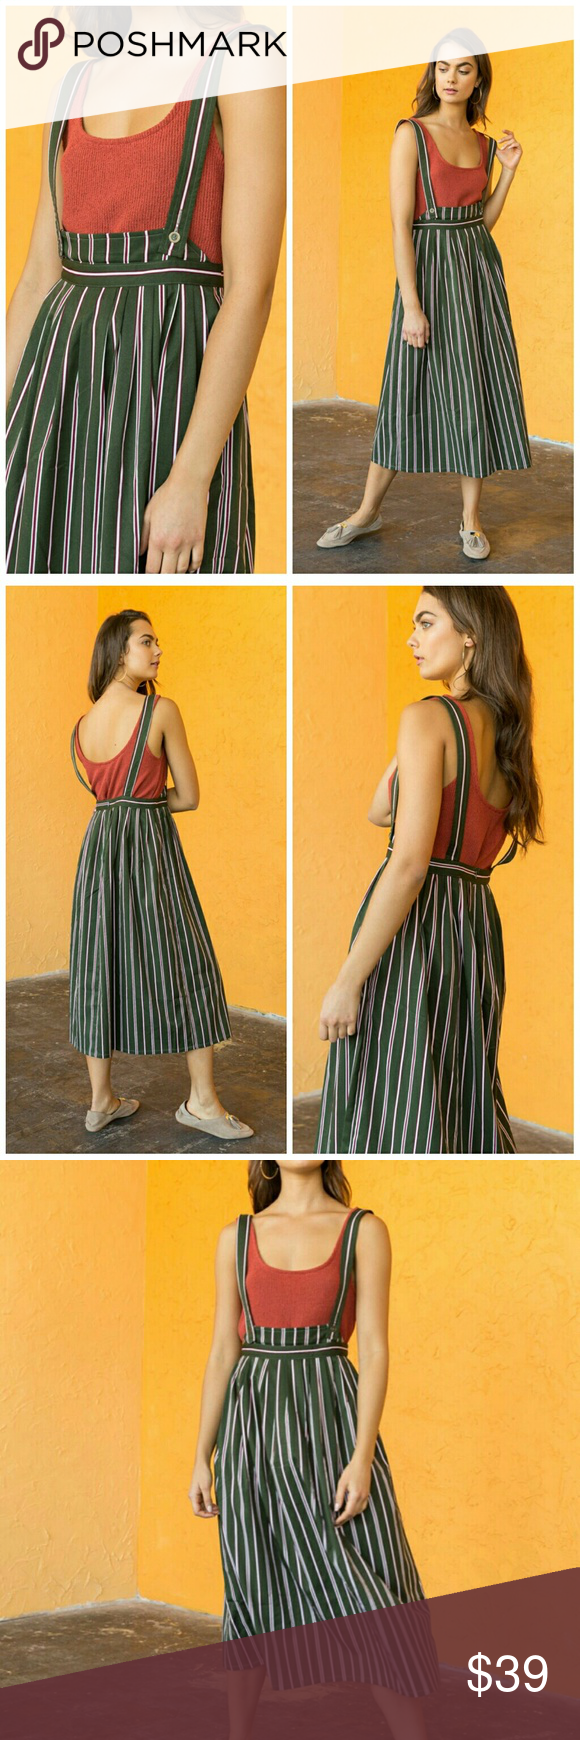 🆕Striped Midi Skirt Overall/ Suspender Skirt New from supplier with tags Does... 1